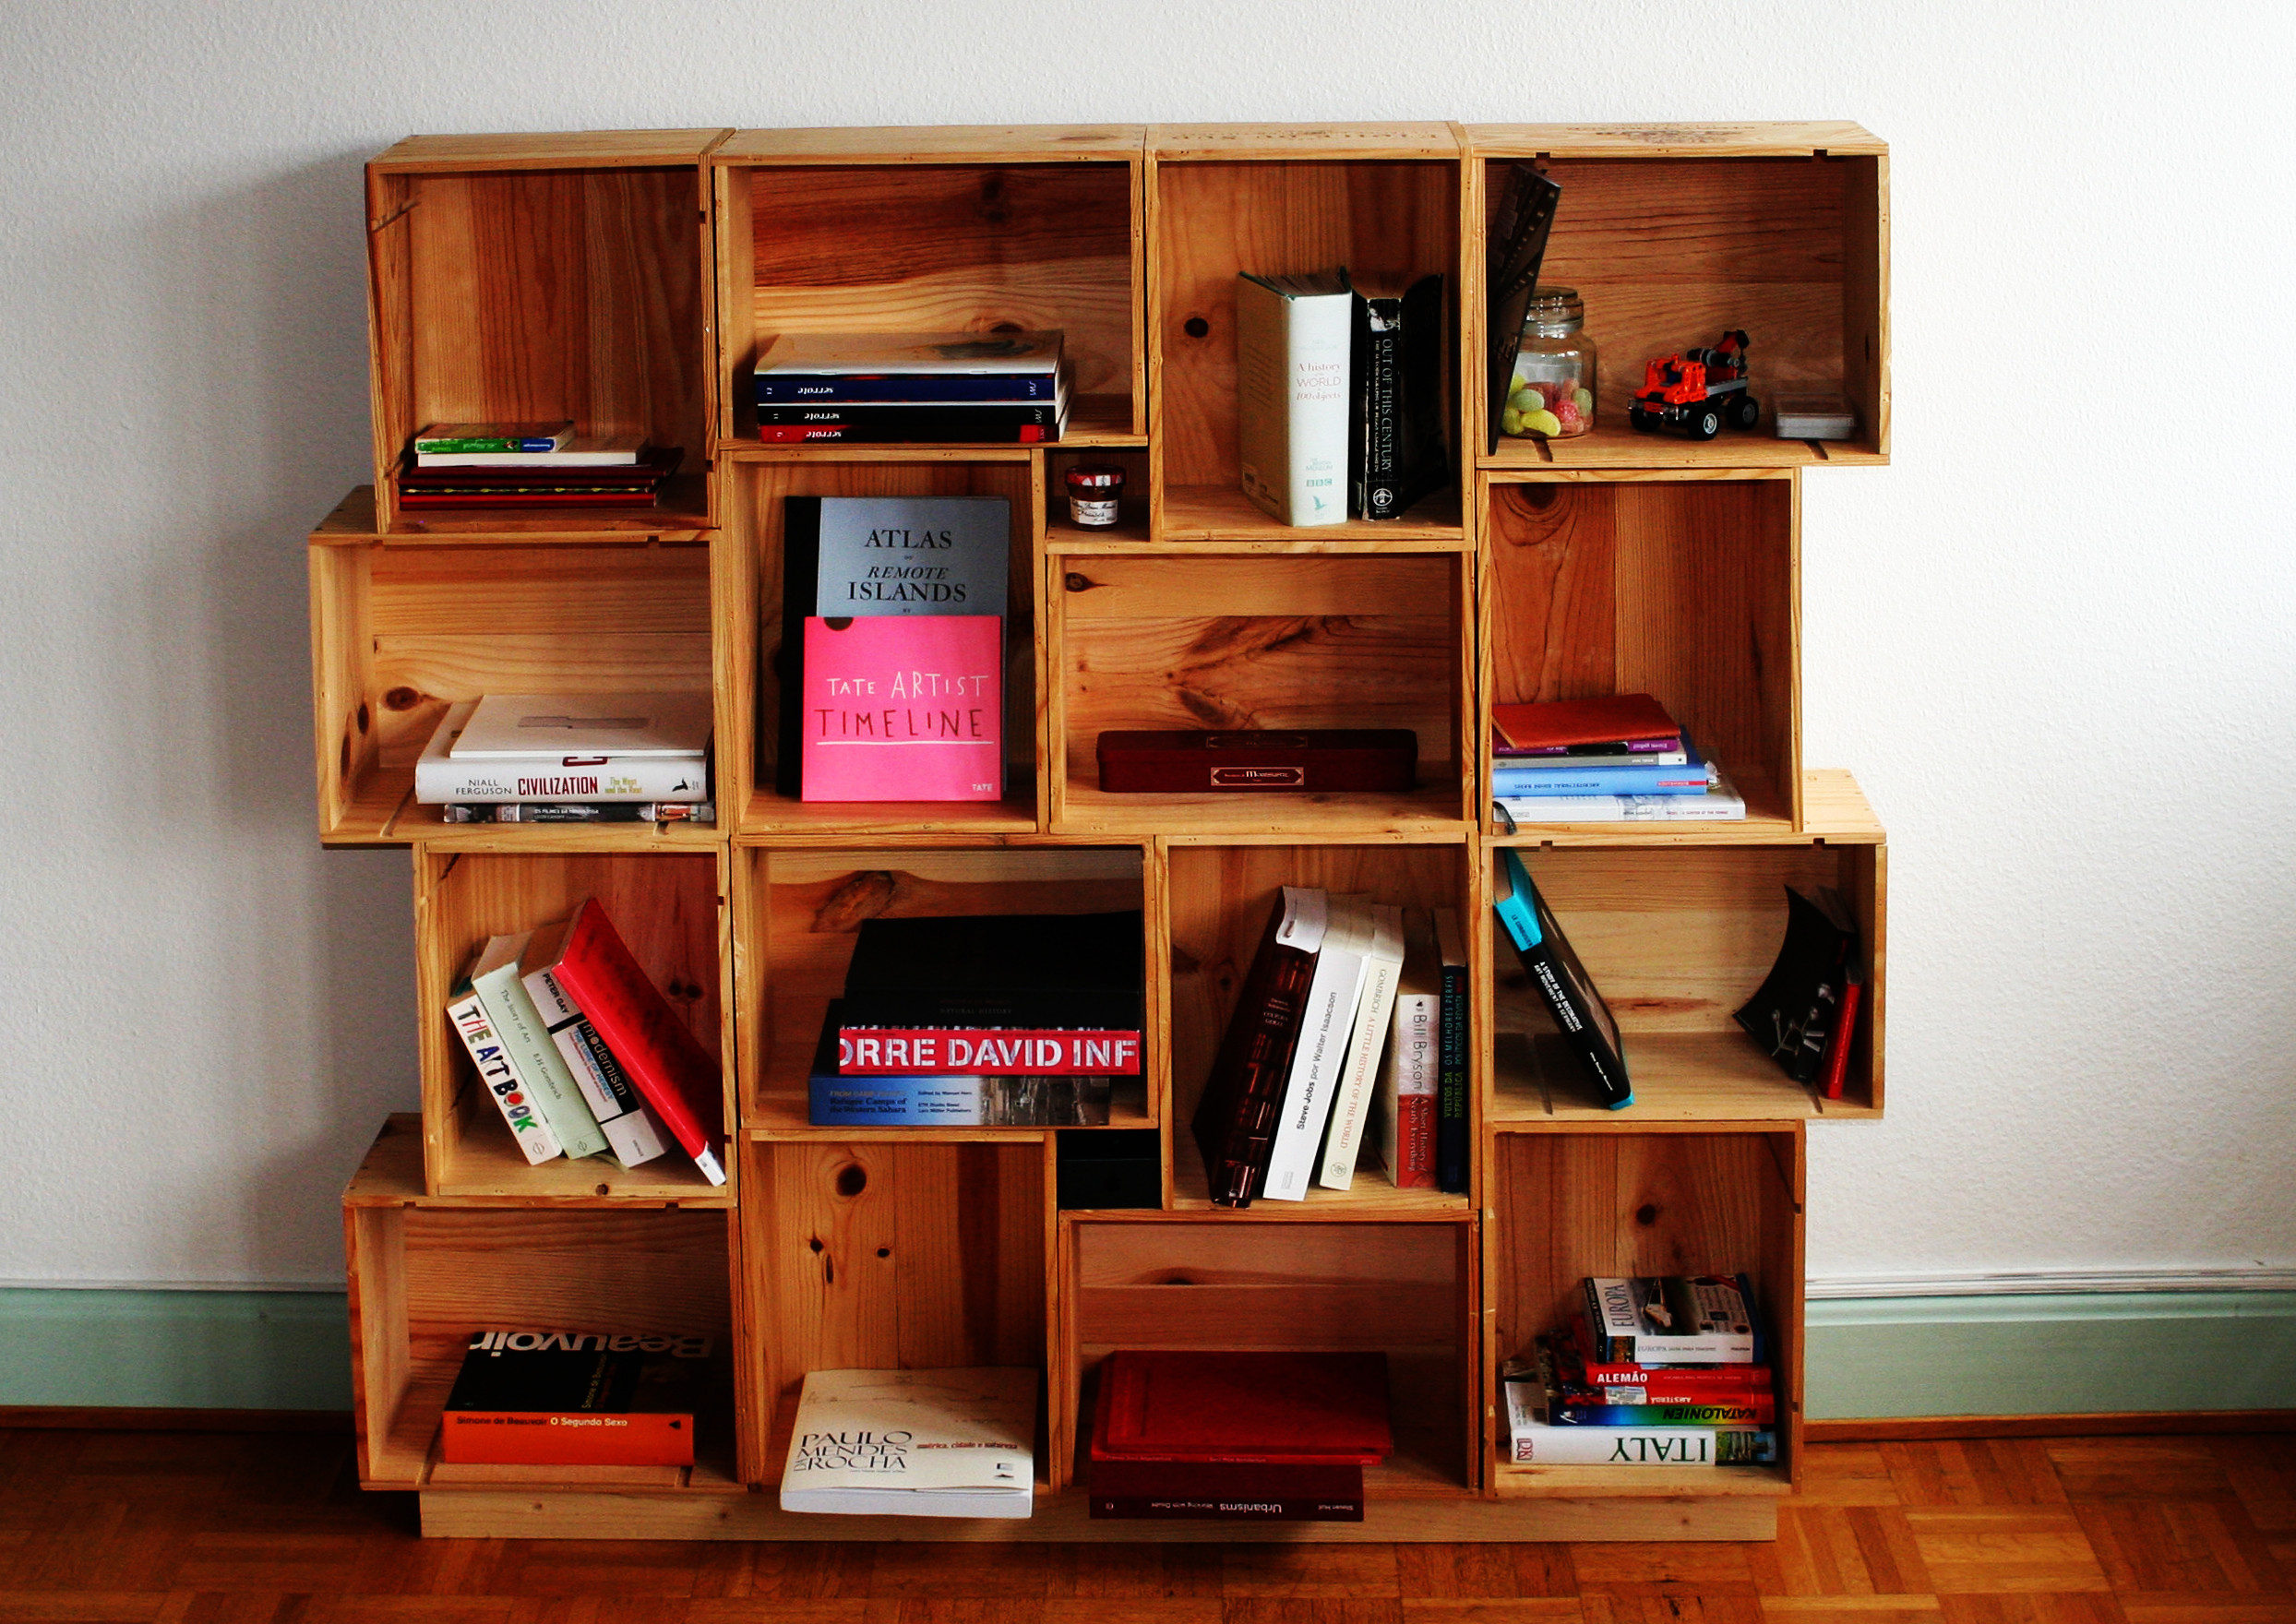 Best ideas about DIY Box Shelf . Save or Pin wine boxes shelves Now.